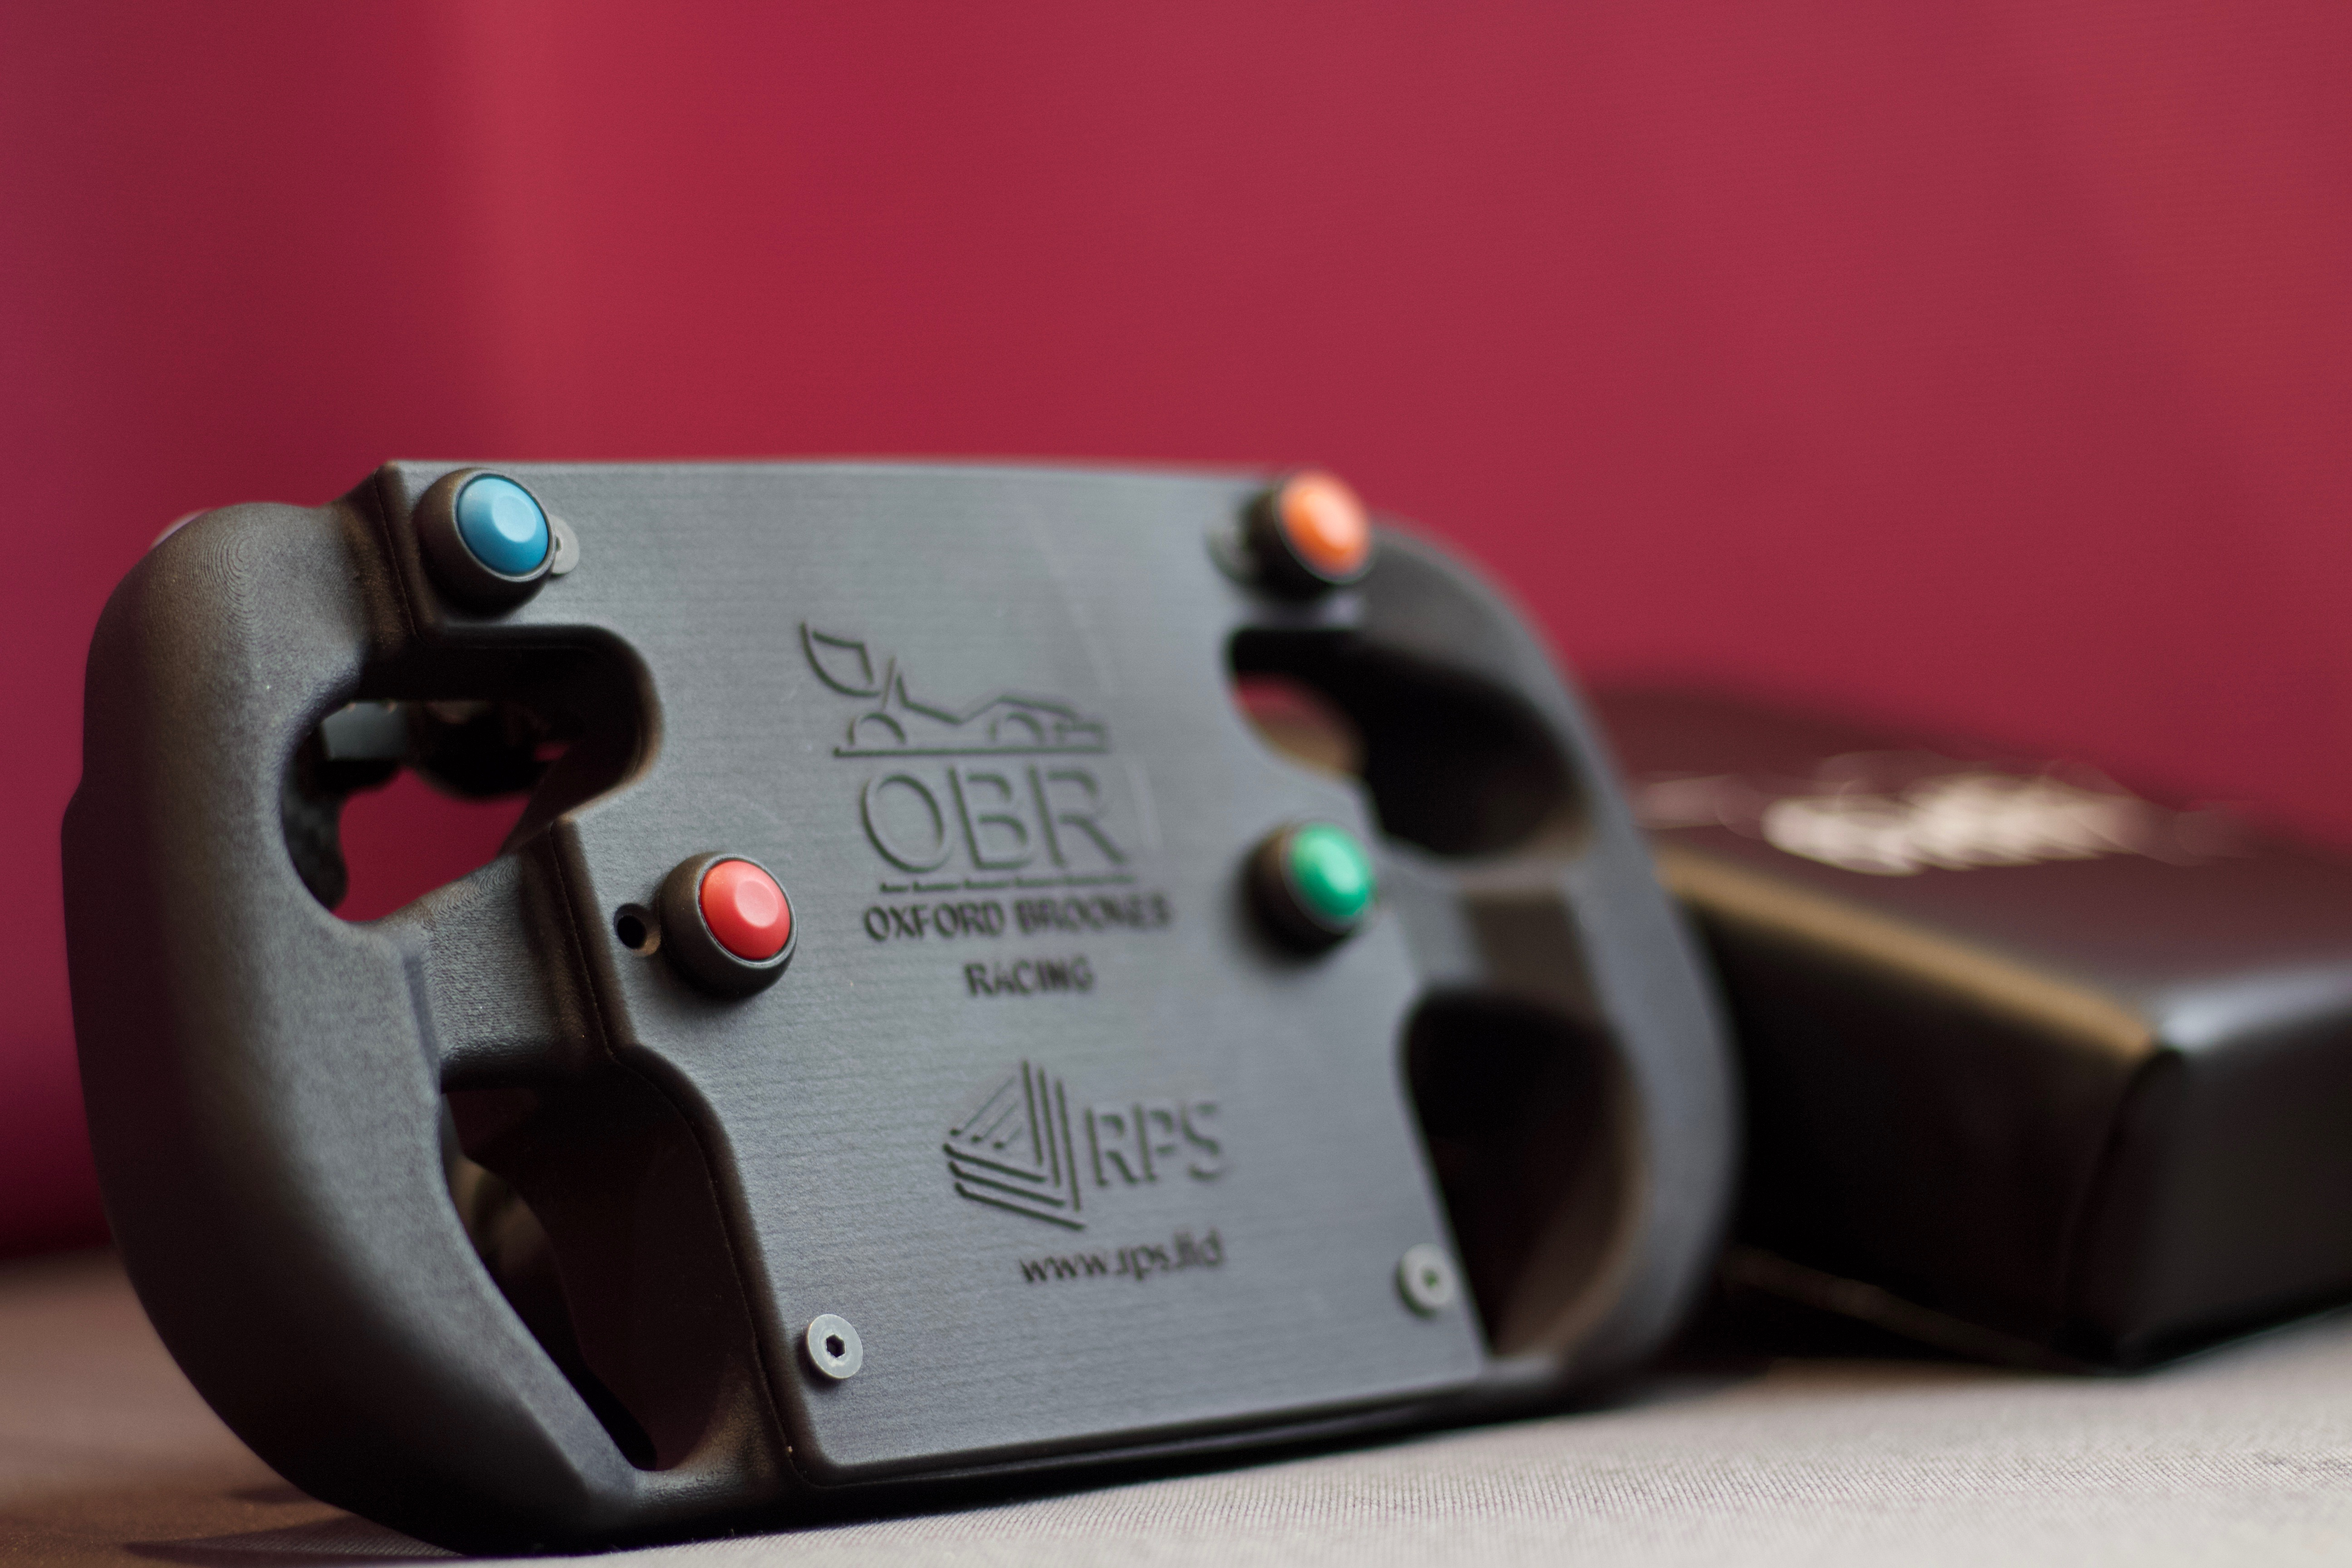 OBR19 steering wheel design iterated with 3D printing. Photo via RPS.